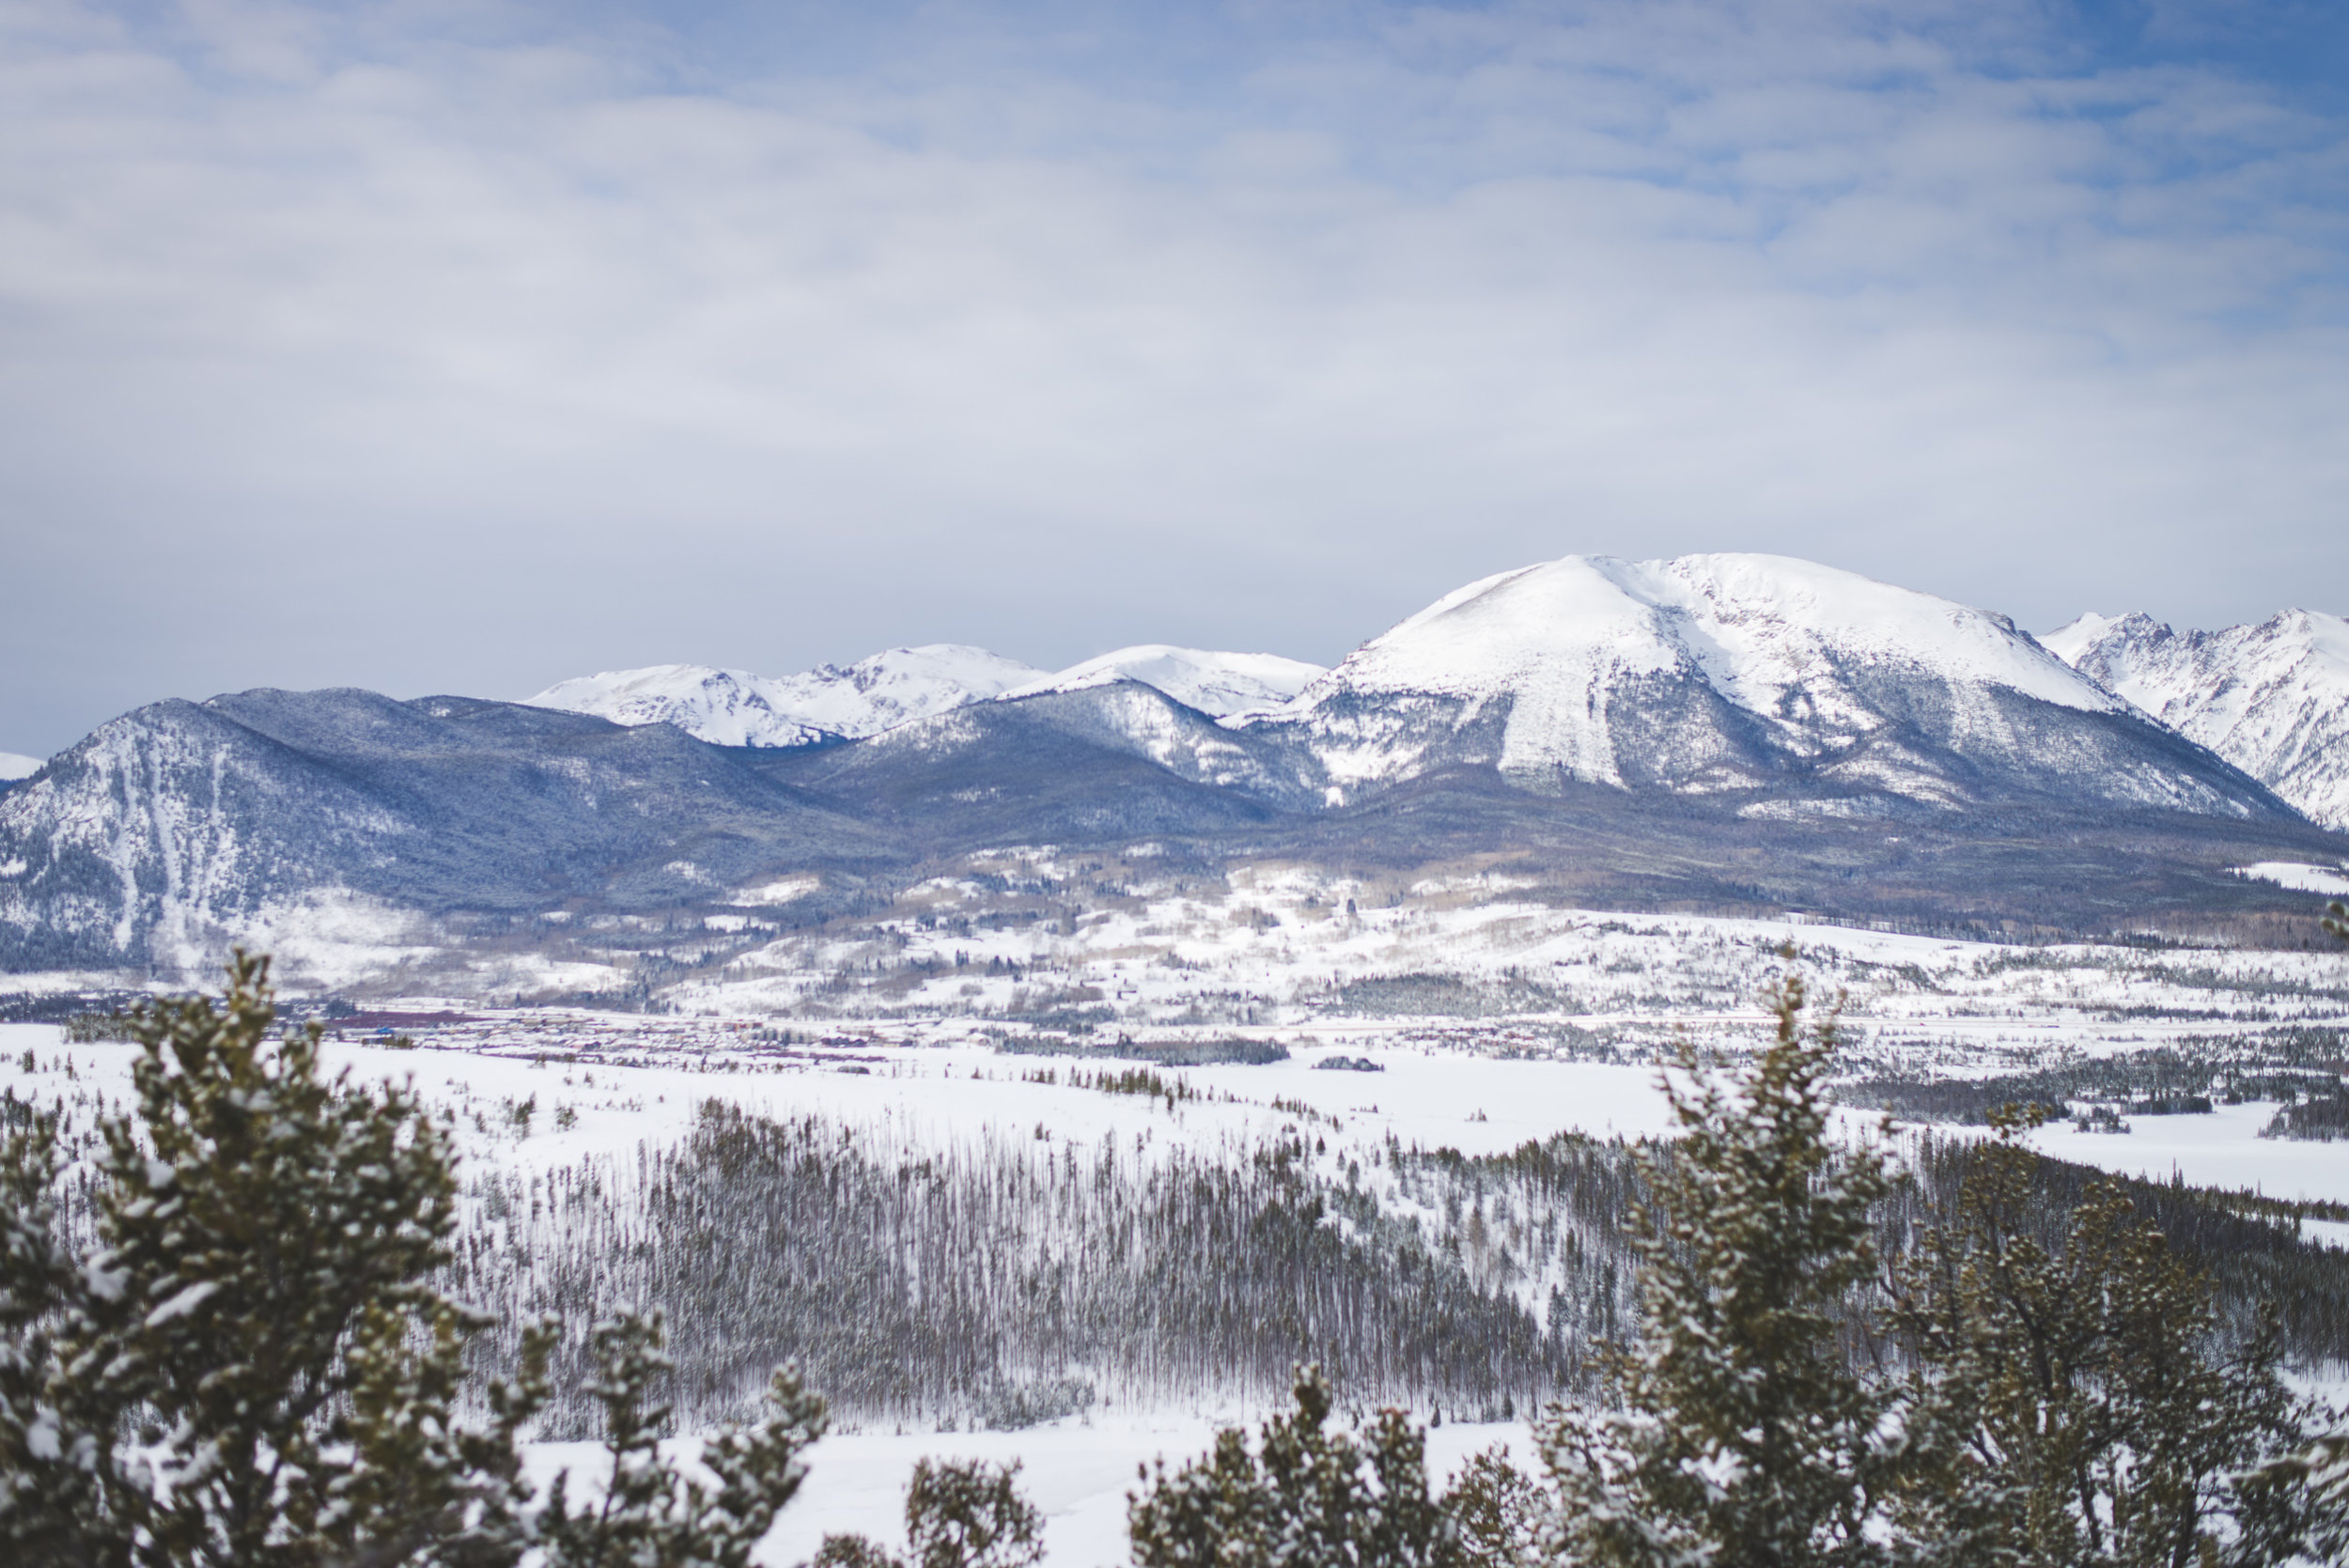 Buffalo Mountain towers over a frozen Lake Dillon in Summit County, Colorado in the winter